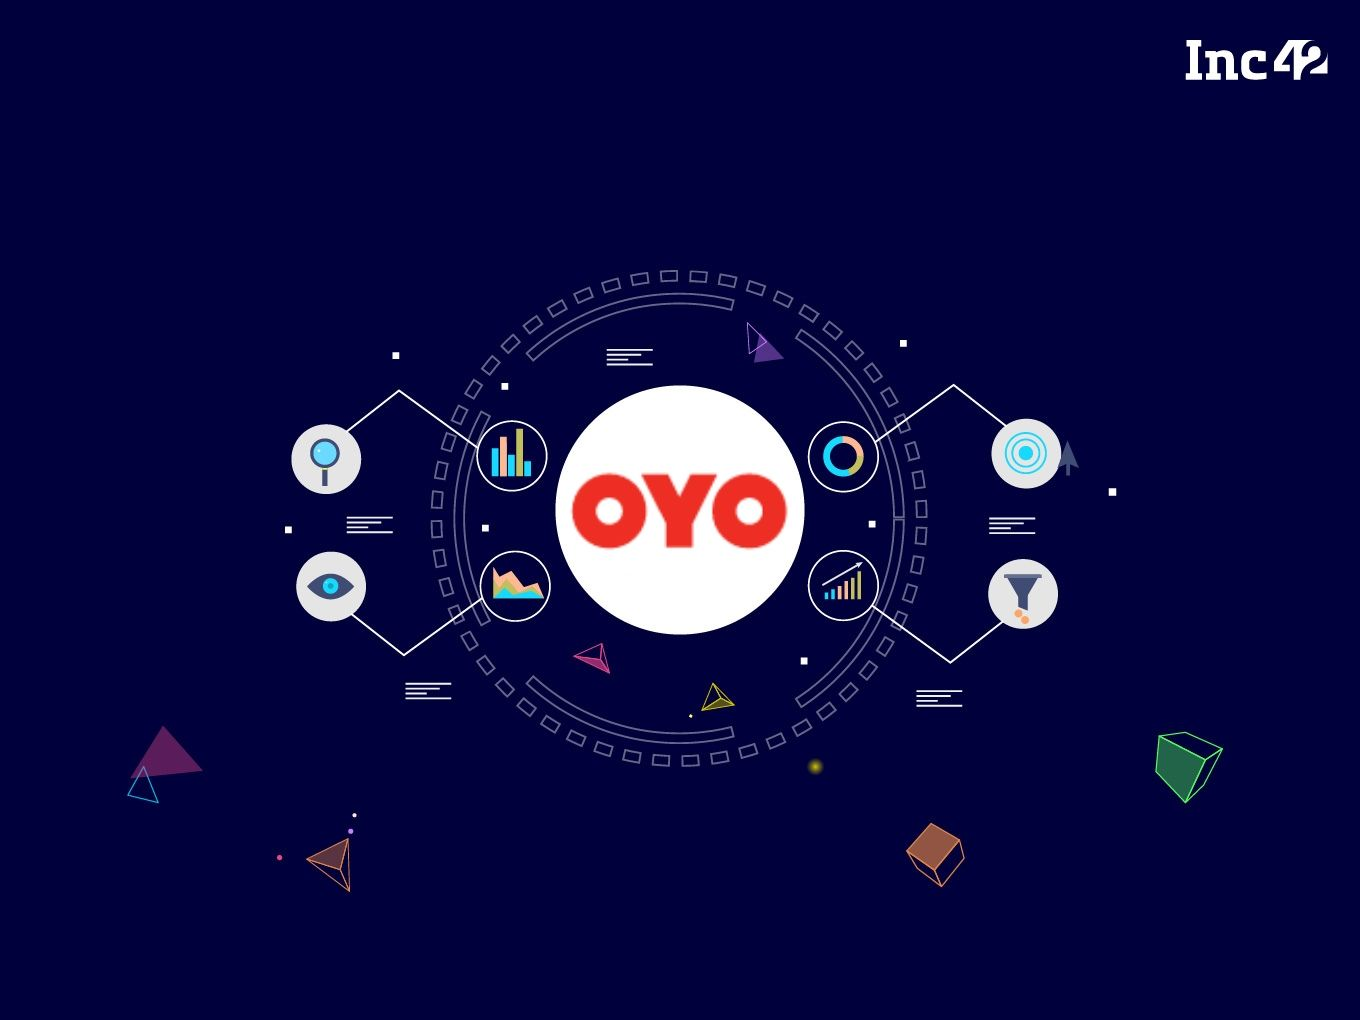 [What The Financials] Everything That Led To 5.4X Increase In OYO's Losses For FY19